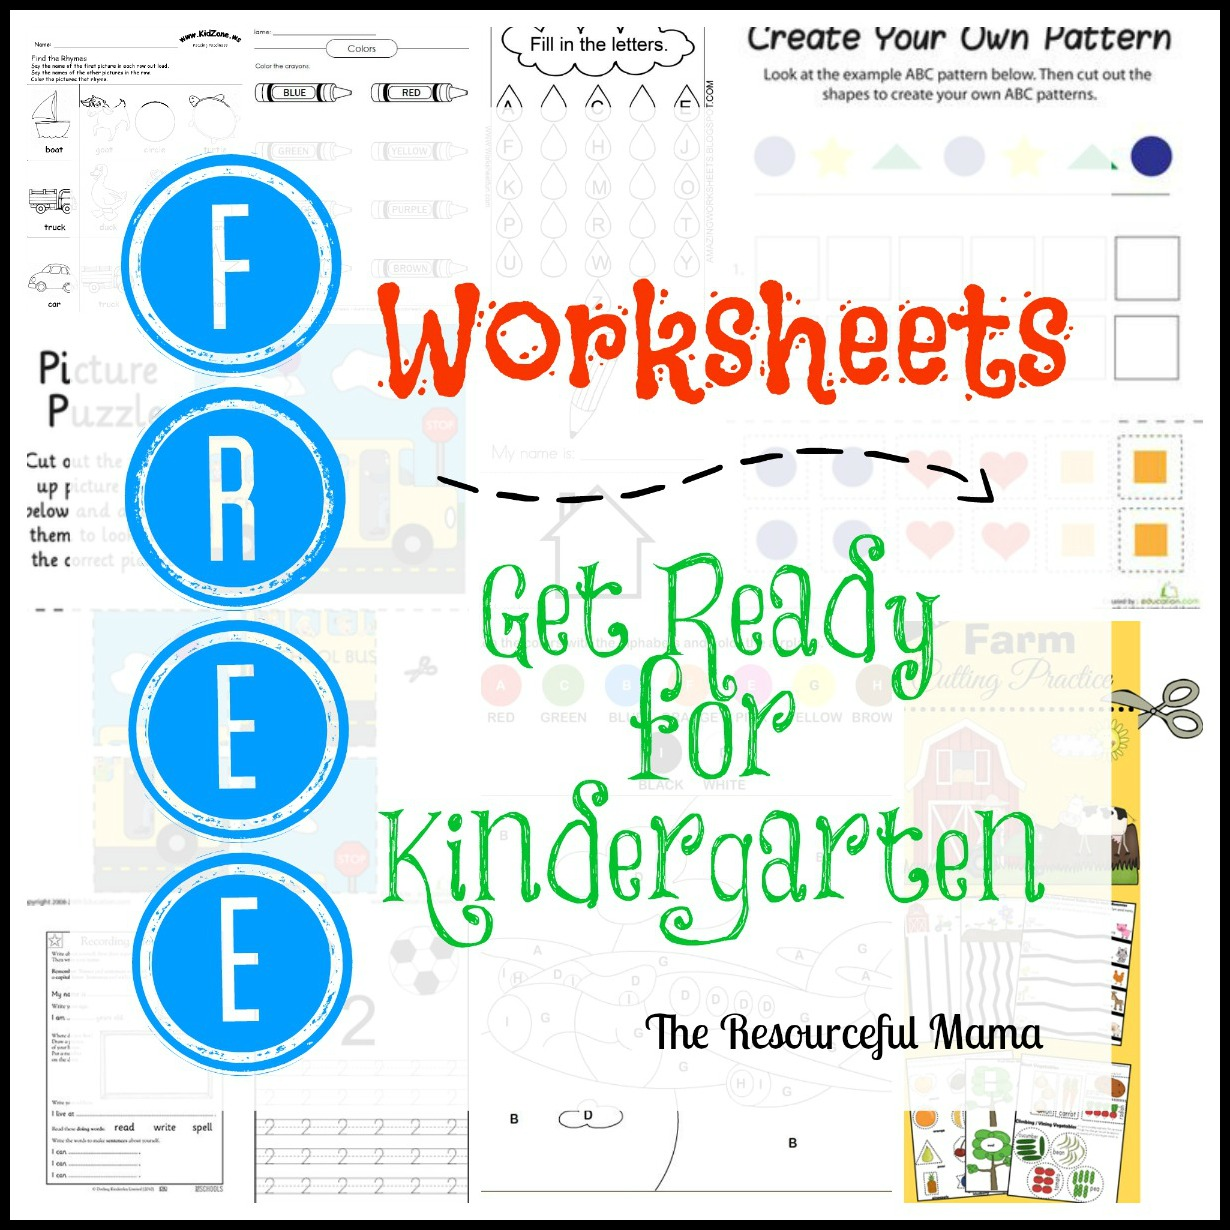 hight resolution of Printable Filipino Worksheet For Kindergarten   Printable Worksheets and  Activities for Teachers